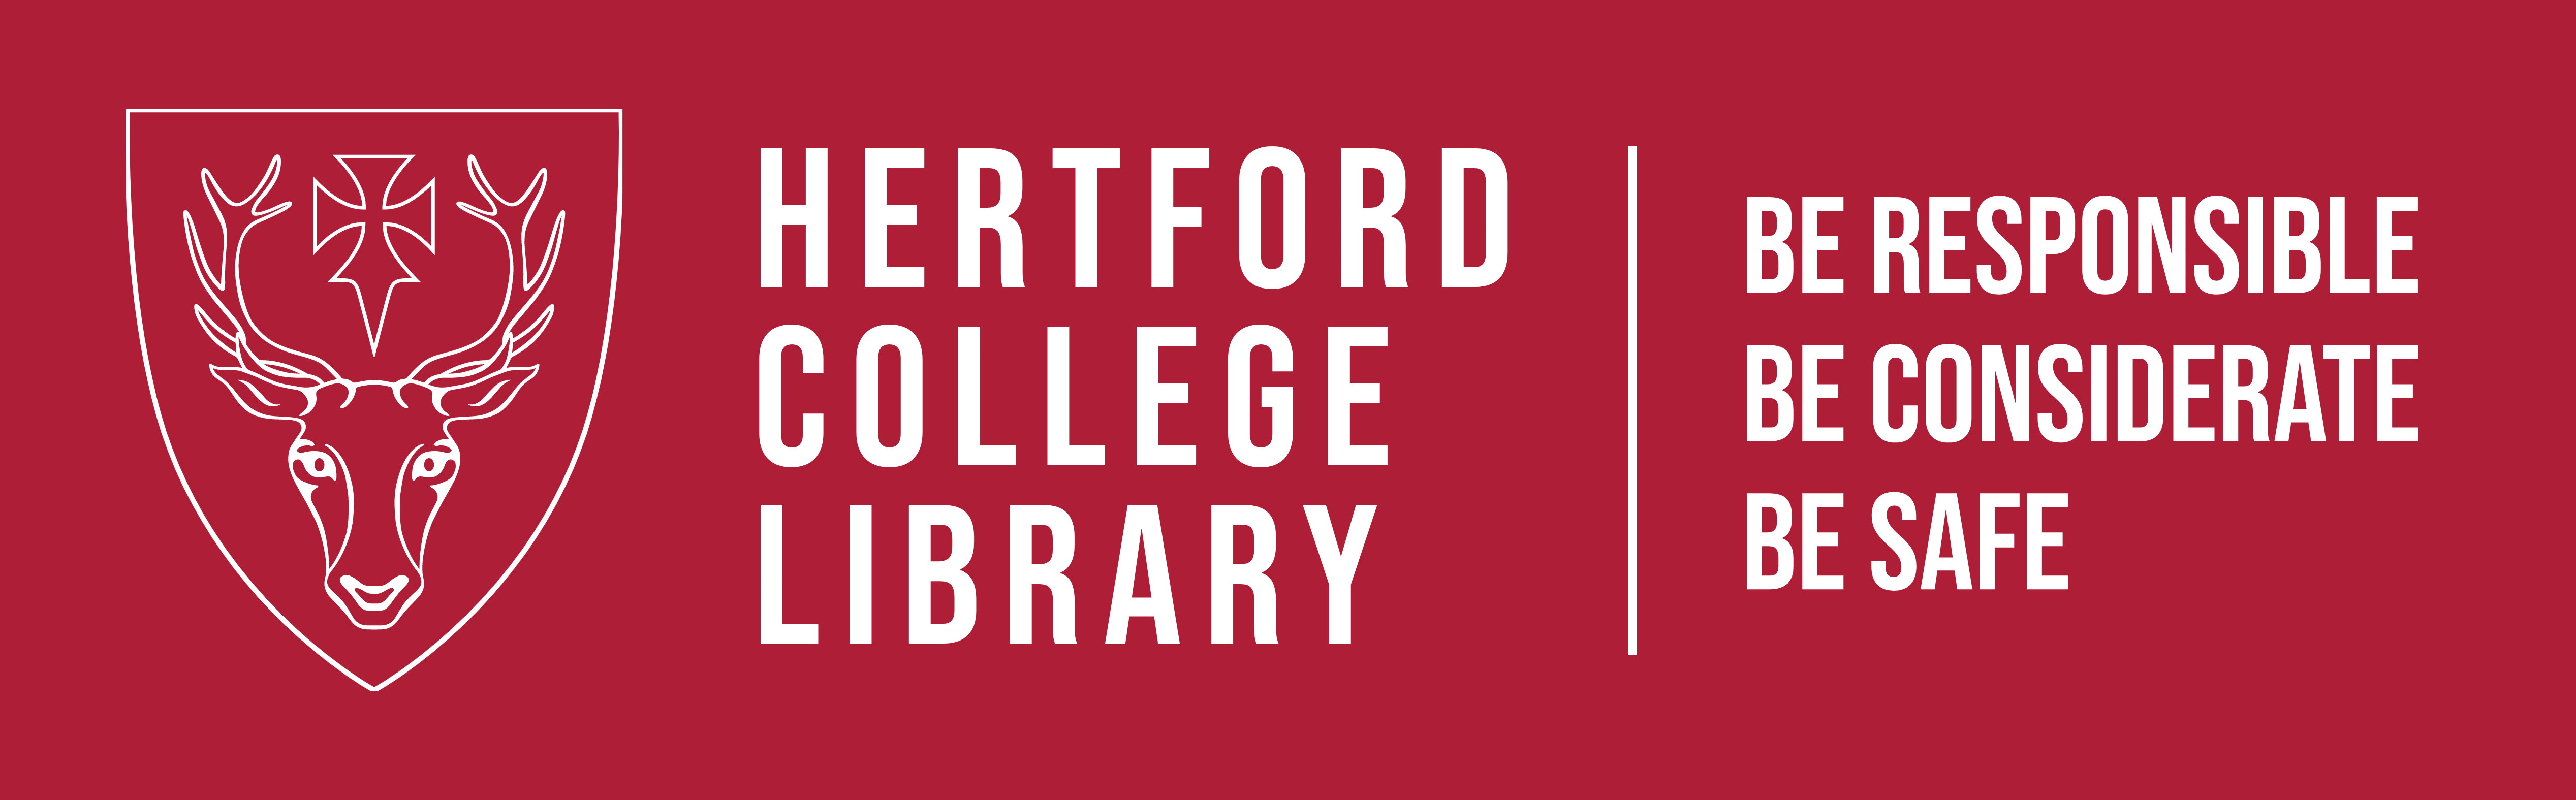 Hertford College Library Logo in red, with extra line: be responsible, be considerate, be safe